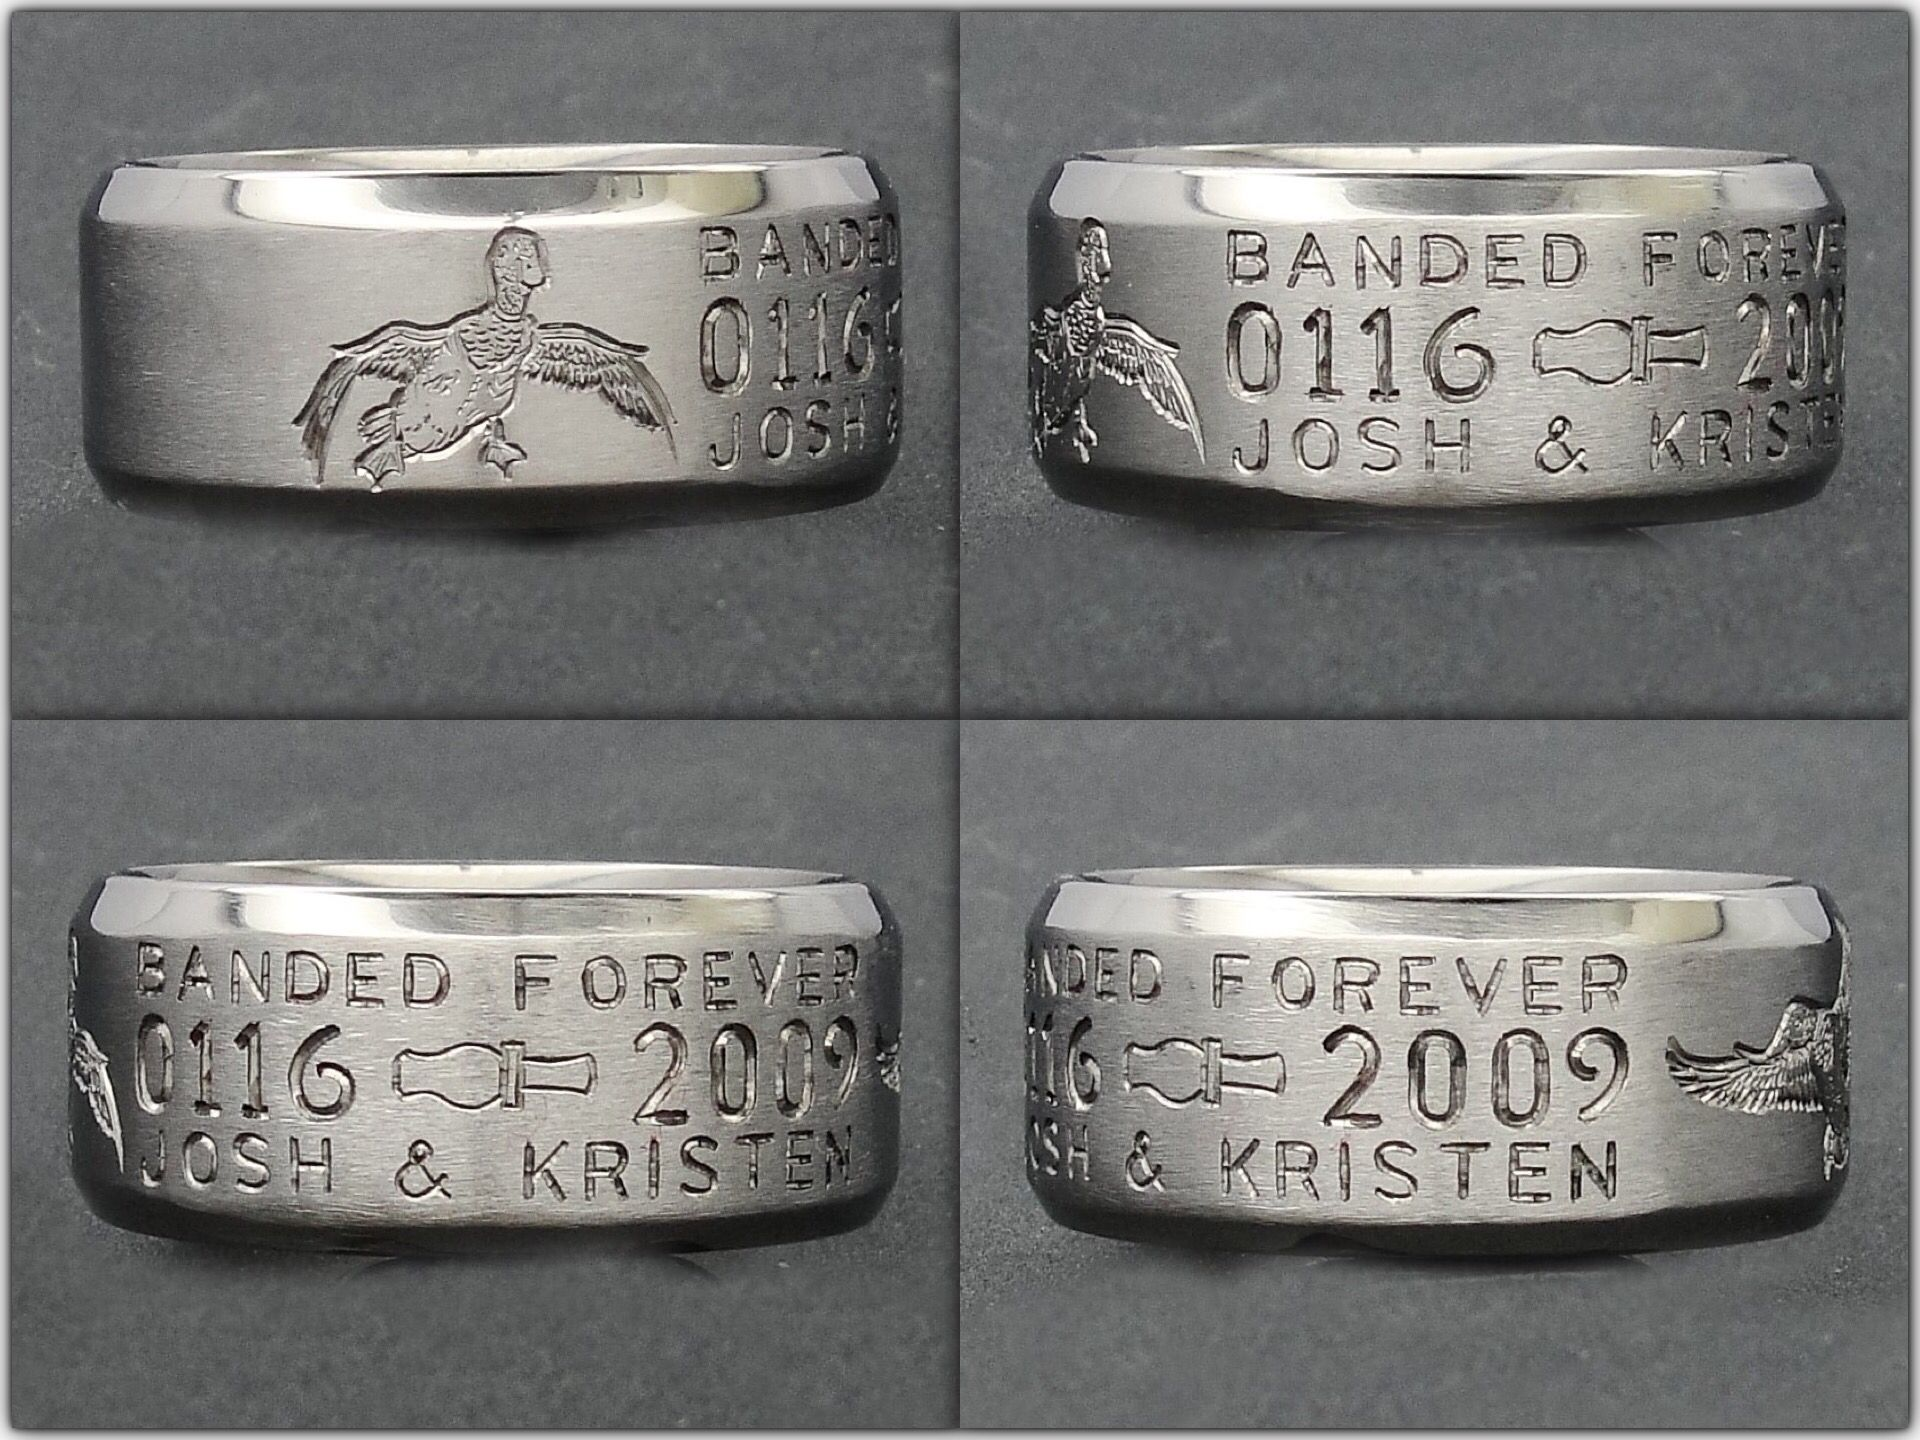 hunting wedding rings outdoorsman wedding band Awsome Duck hunting Wedding Ring